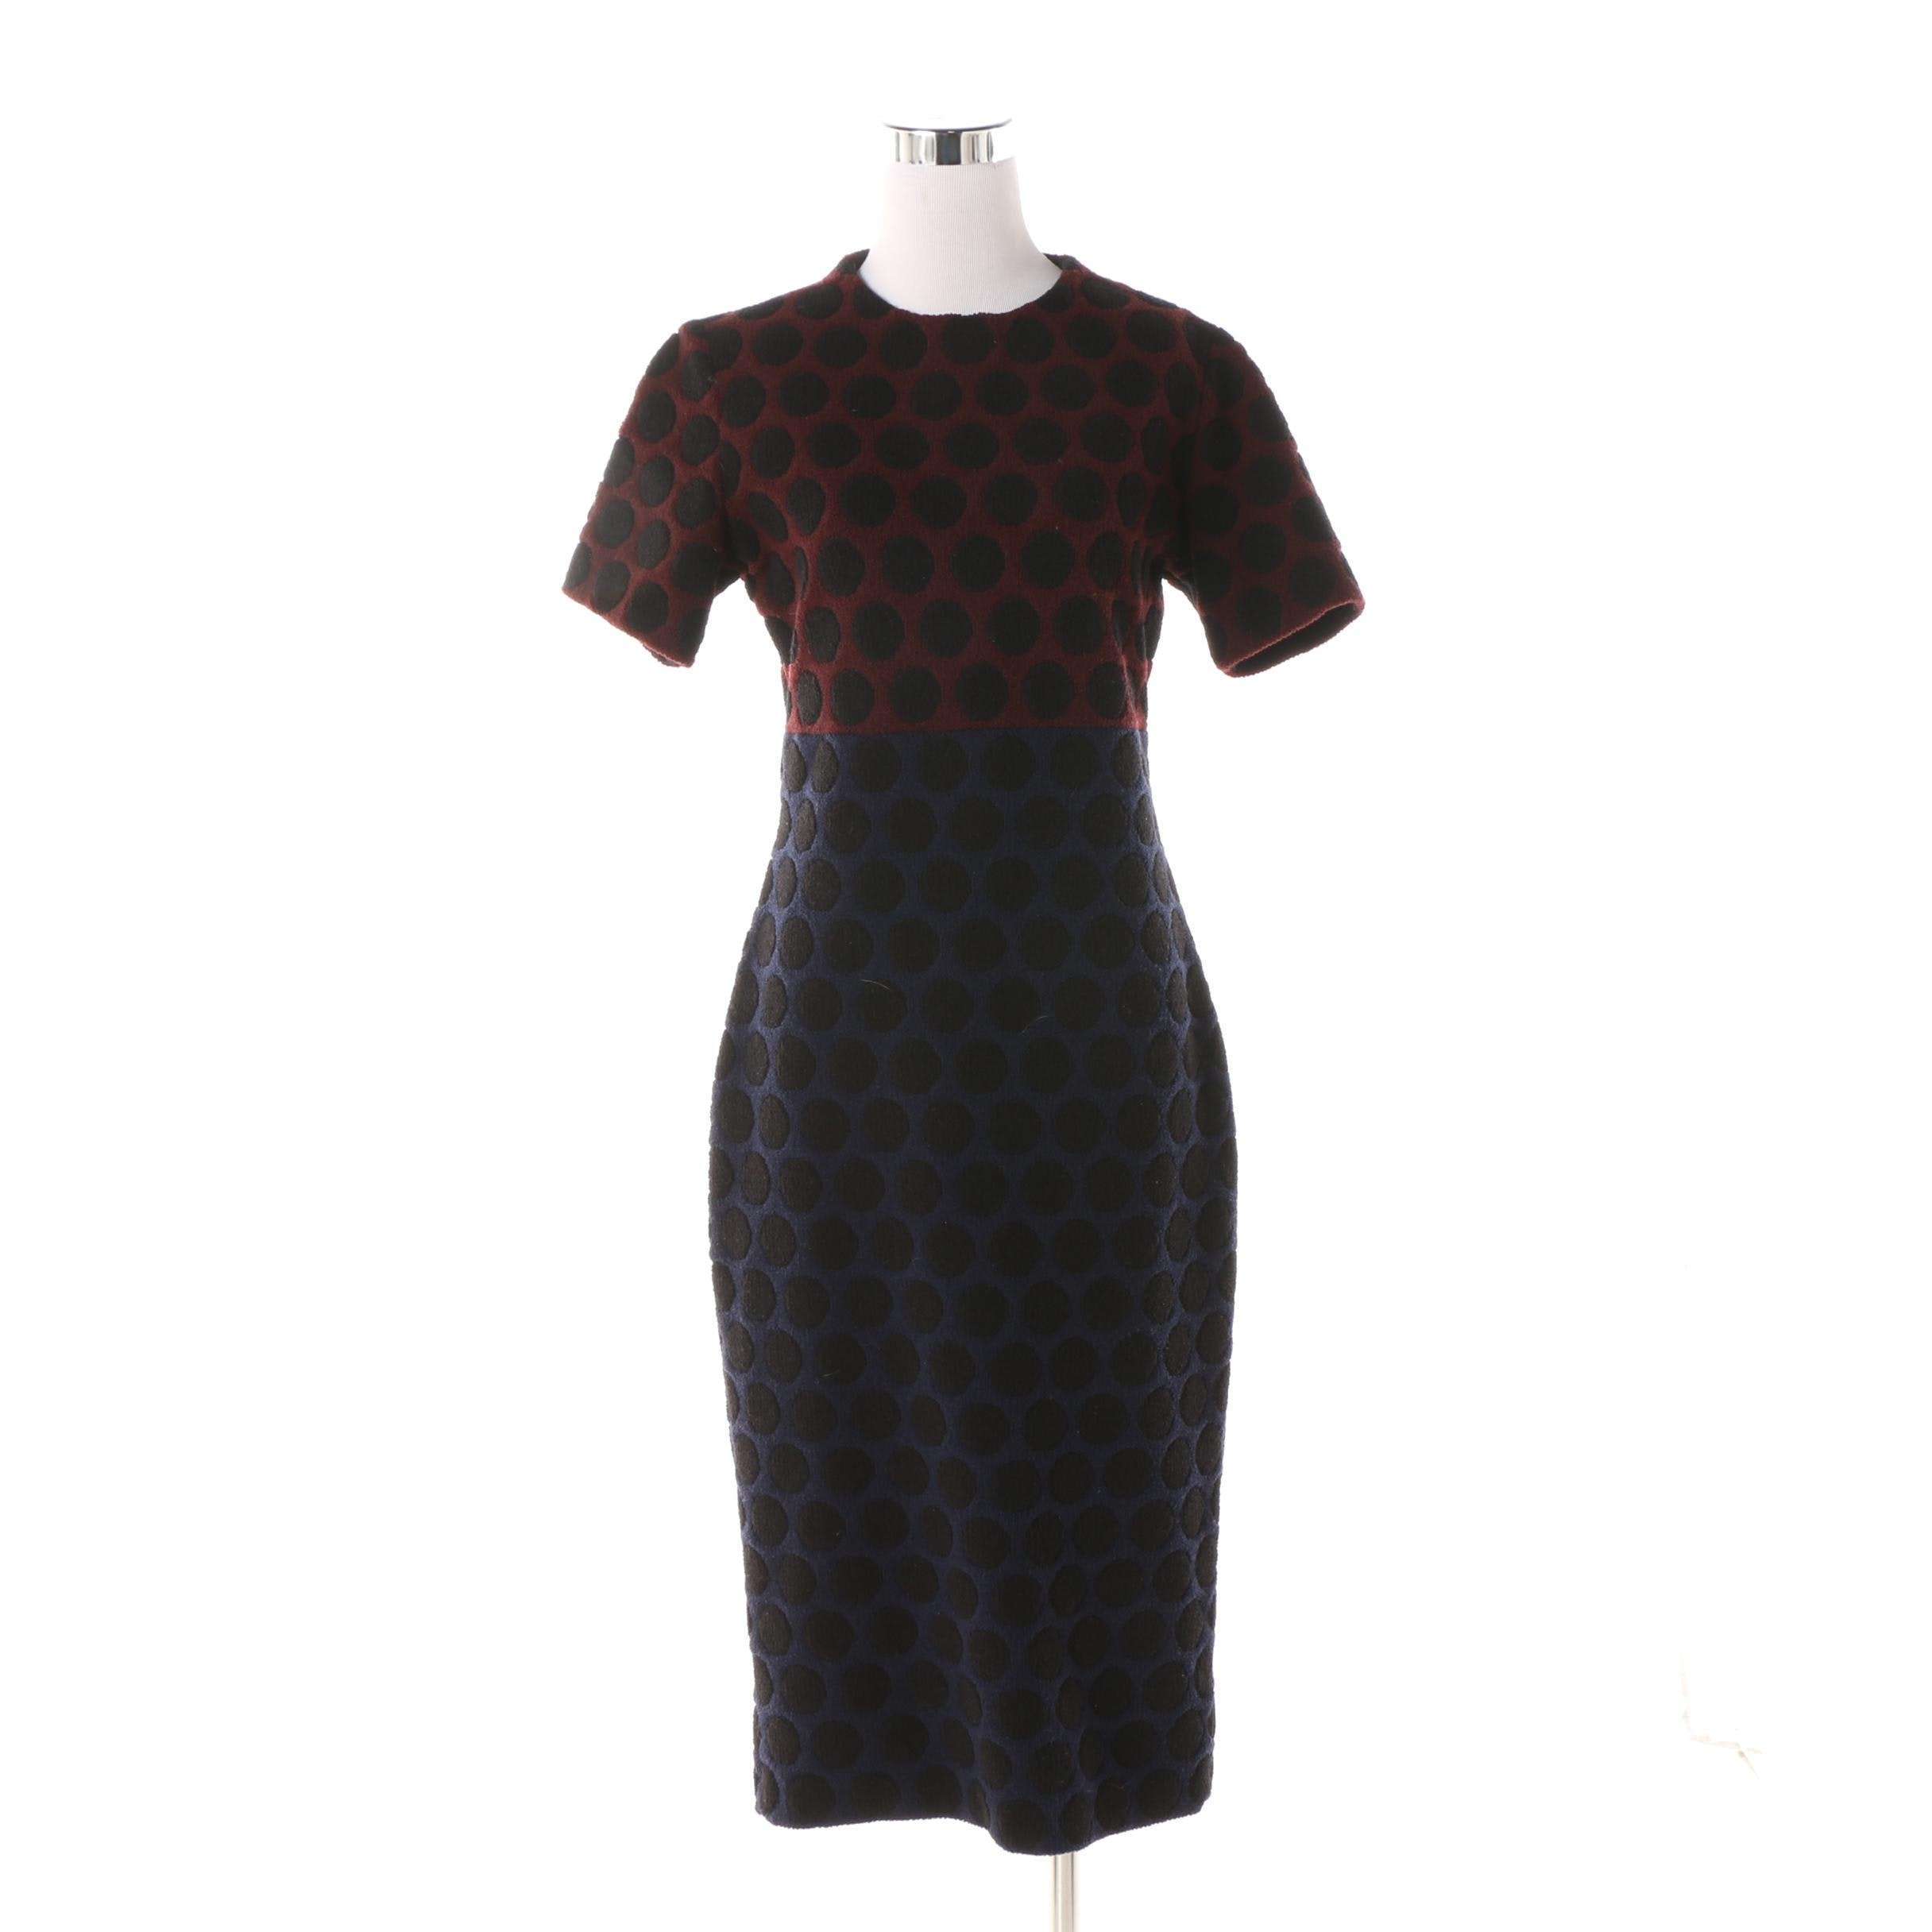 Vintage Marc Jacobs Burgundy and Navy Polka Dot Wool Blend Sheath Dress